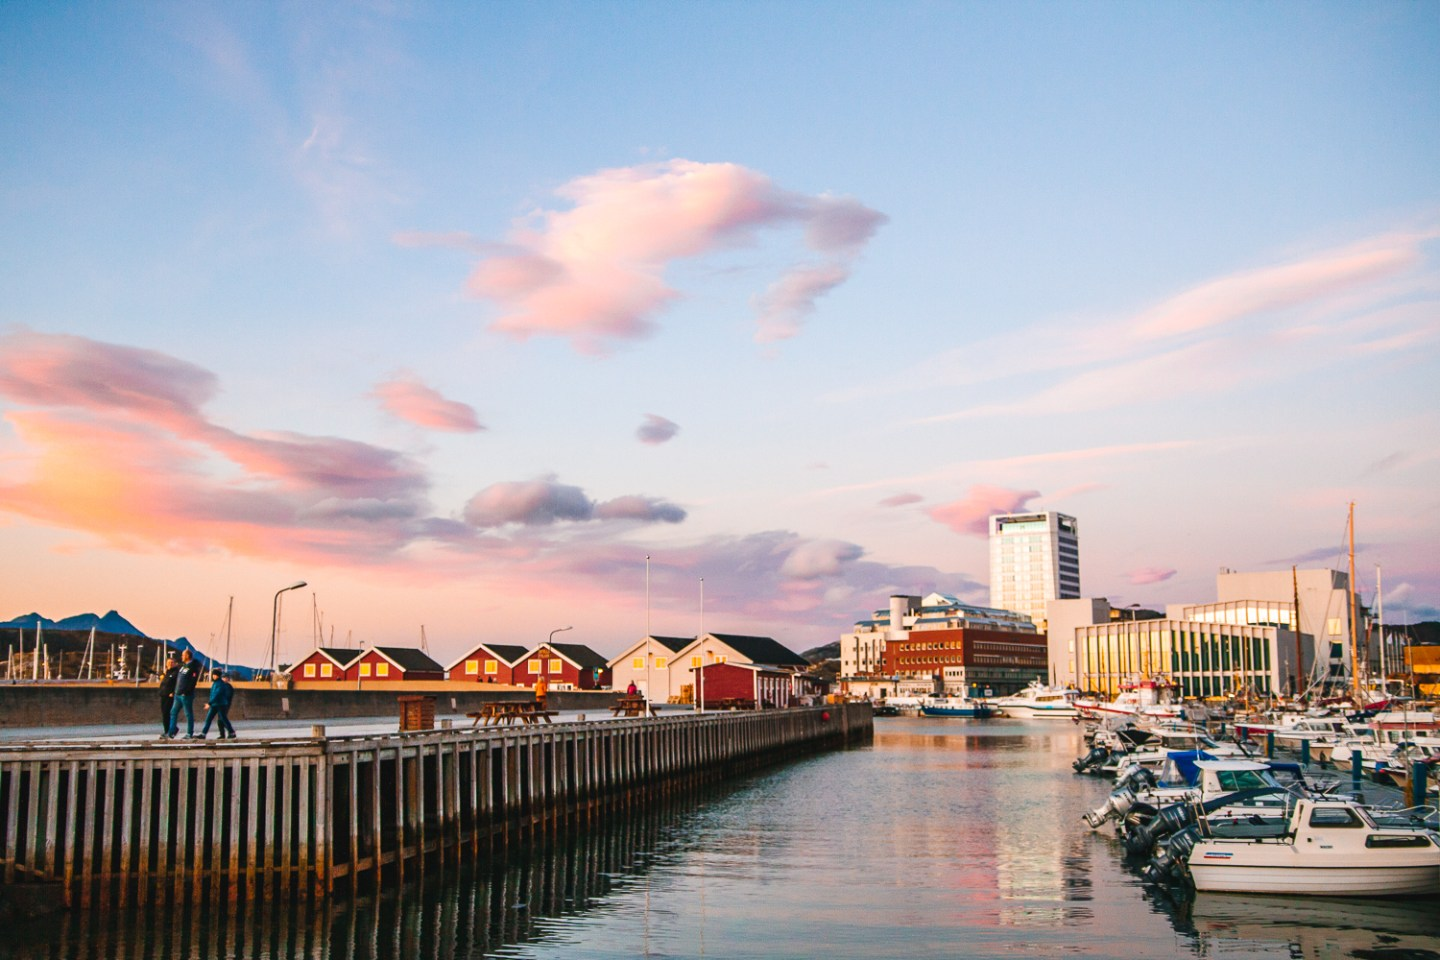 Things to do in bodø: stroll along the harbor